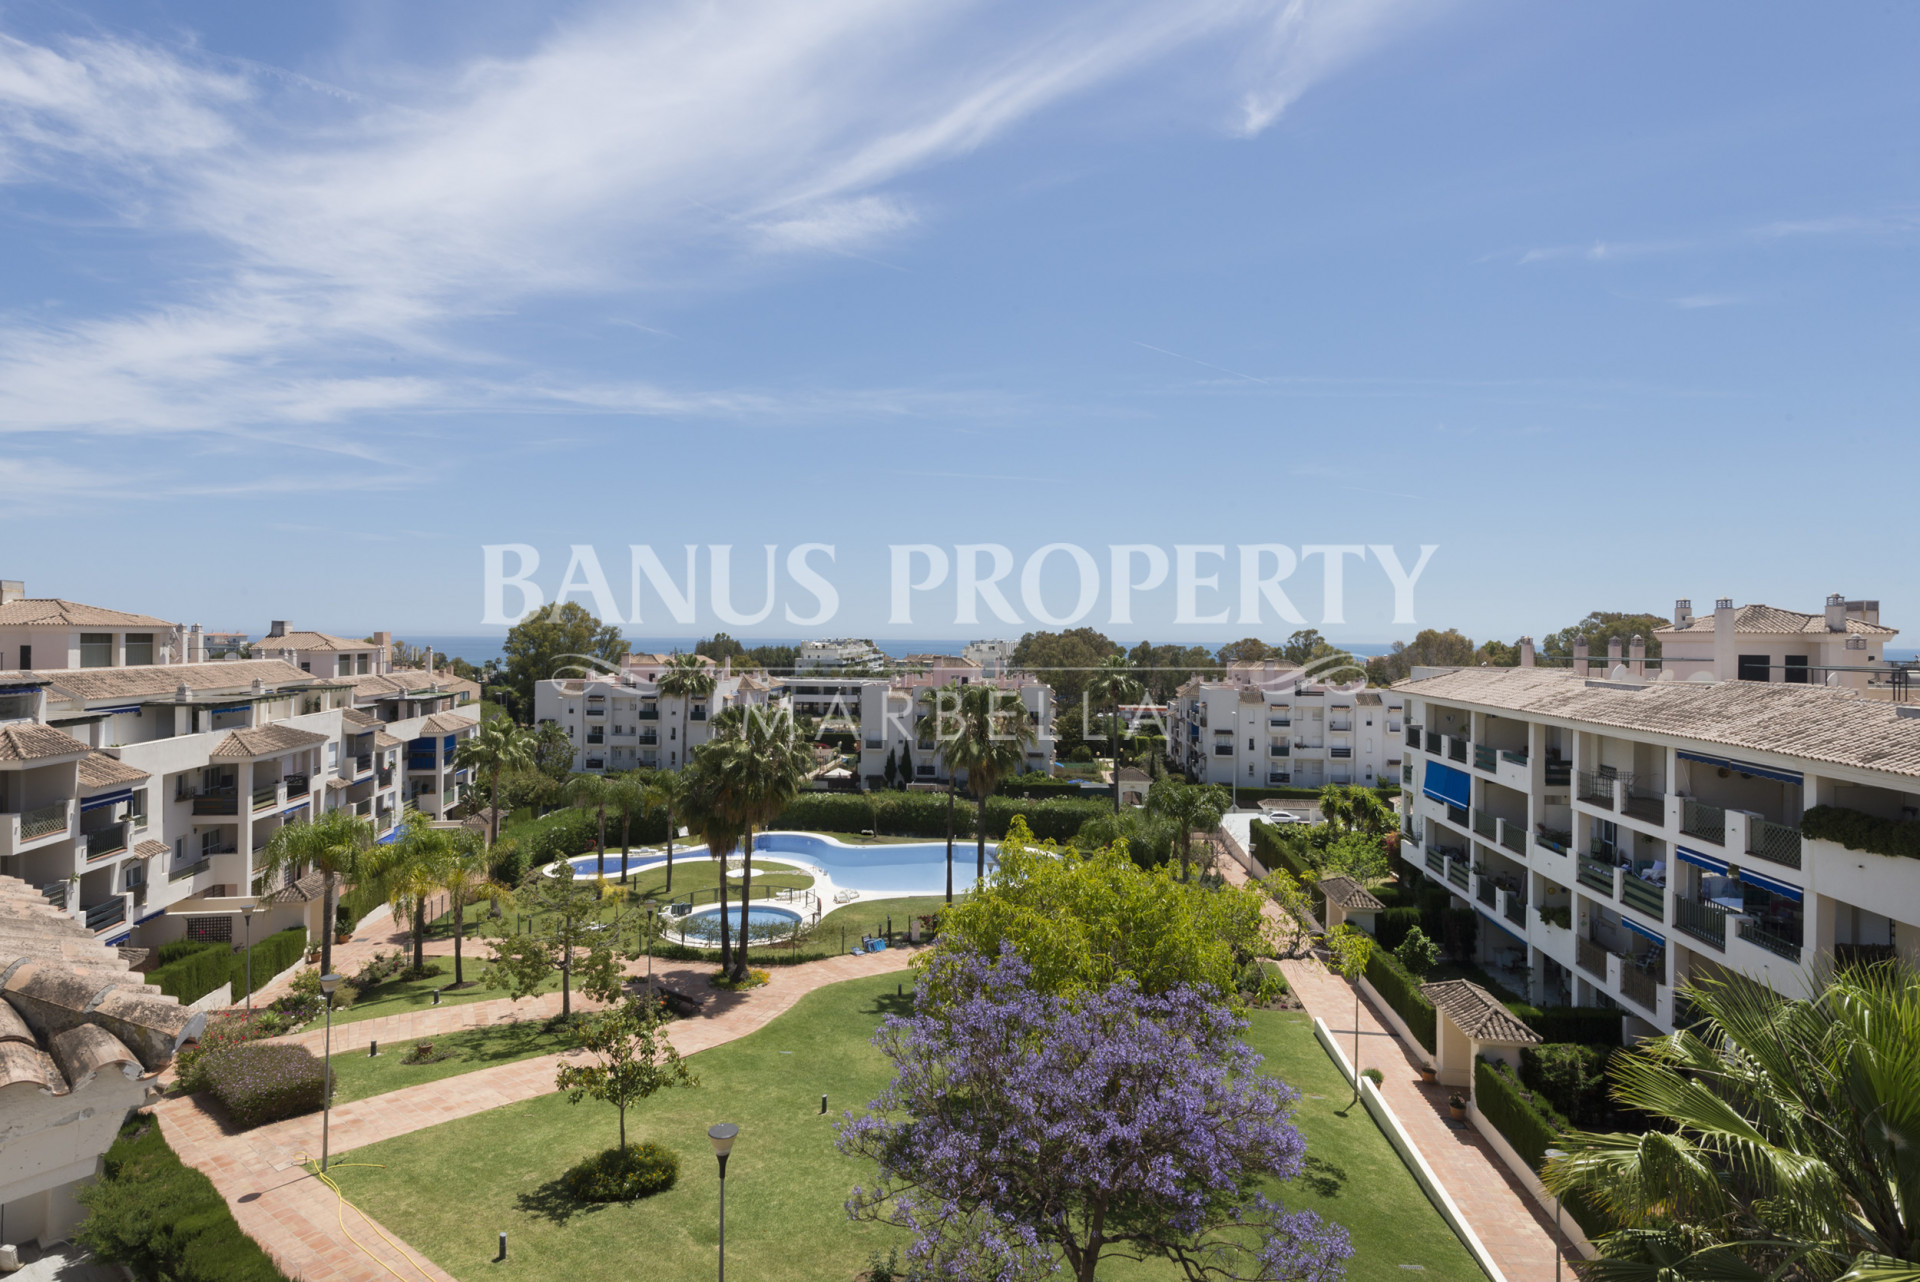 Modern three bedroom penthouse apartment for sale in Nueva Andalucia, Puerto Banús